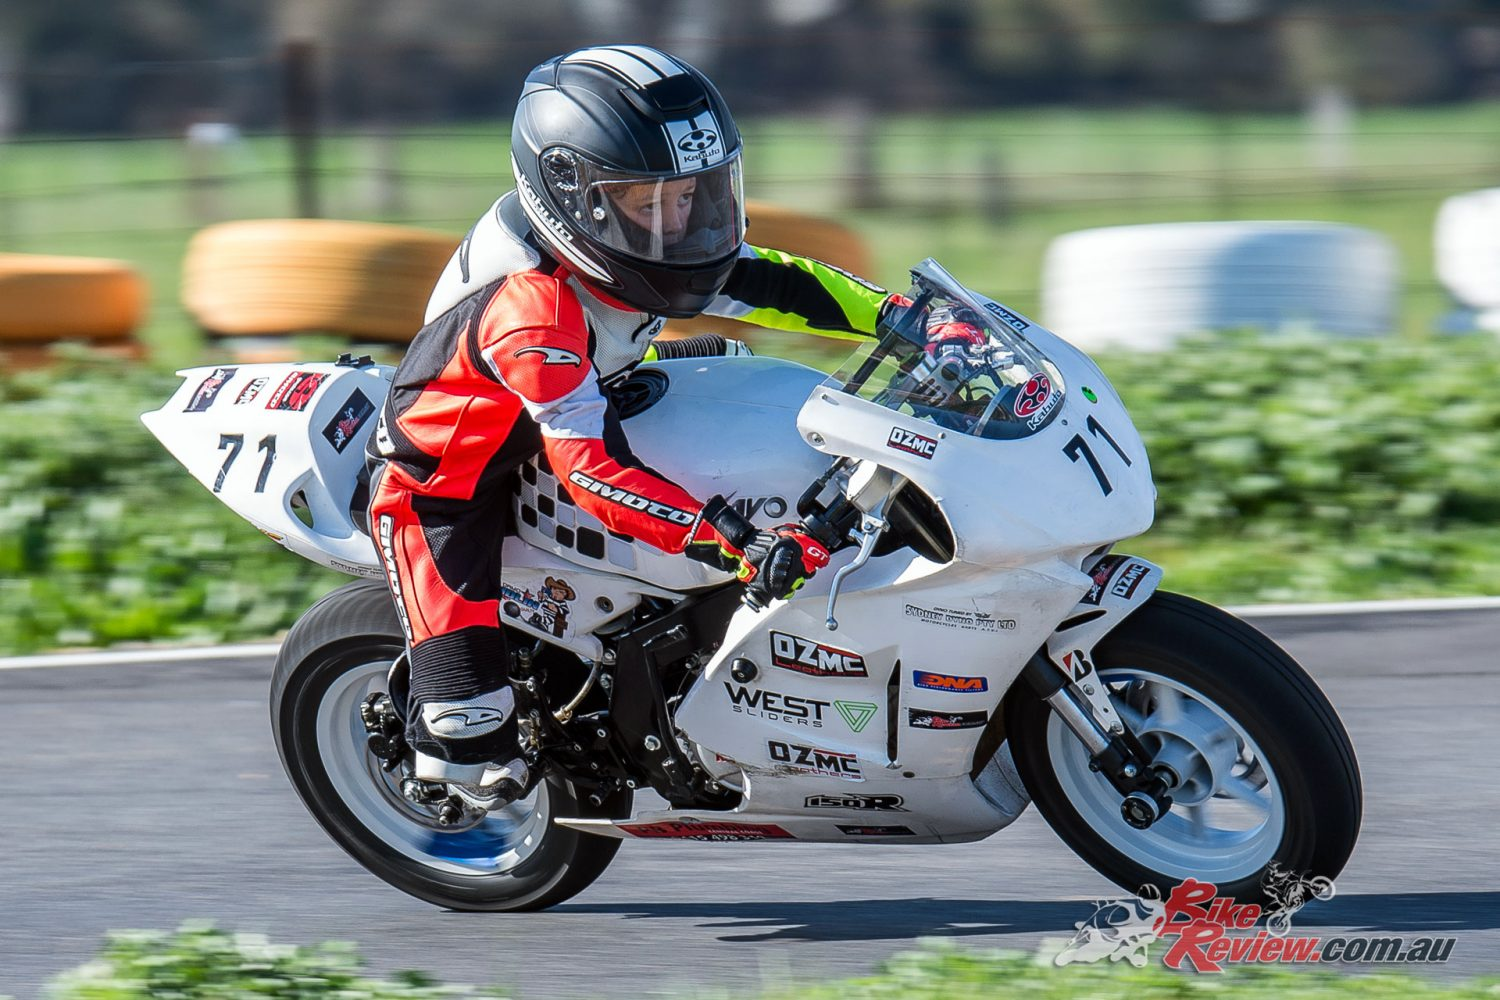 James Weaver riding at MotoStars Round 4 with the Kabuto RT-33 - Image by Col Roper